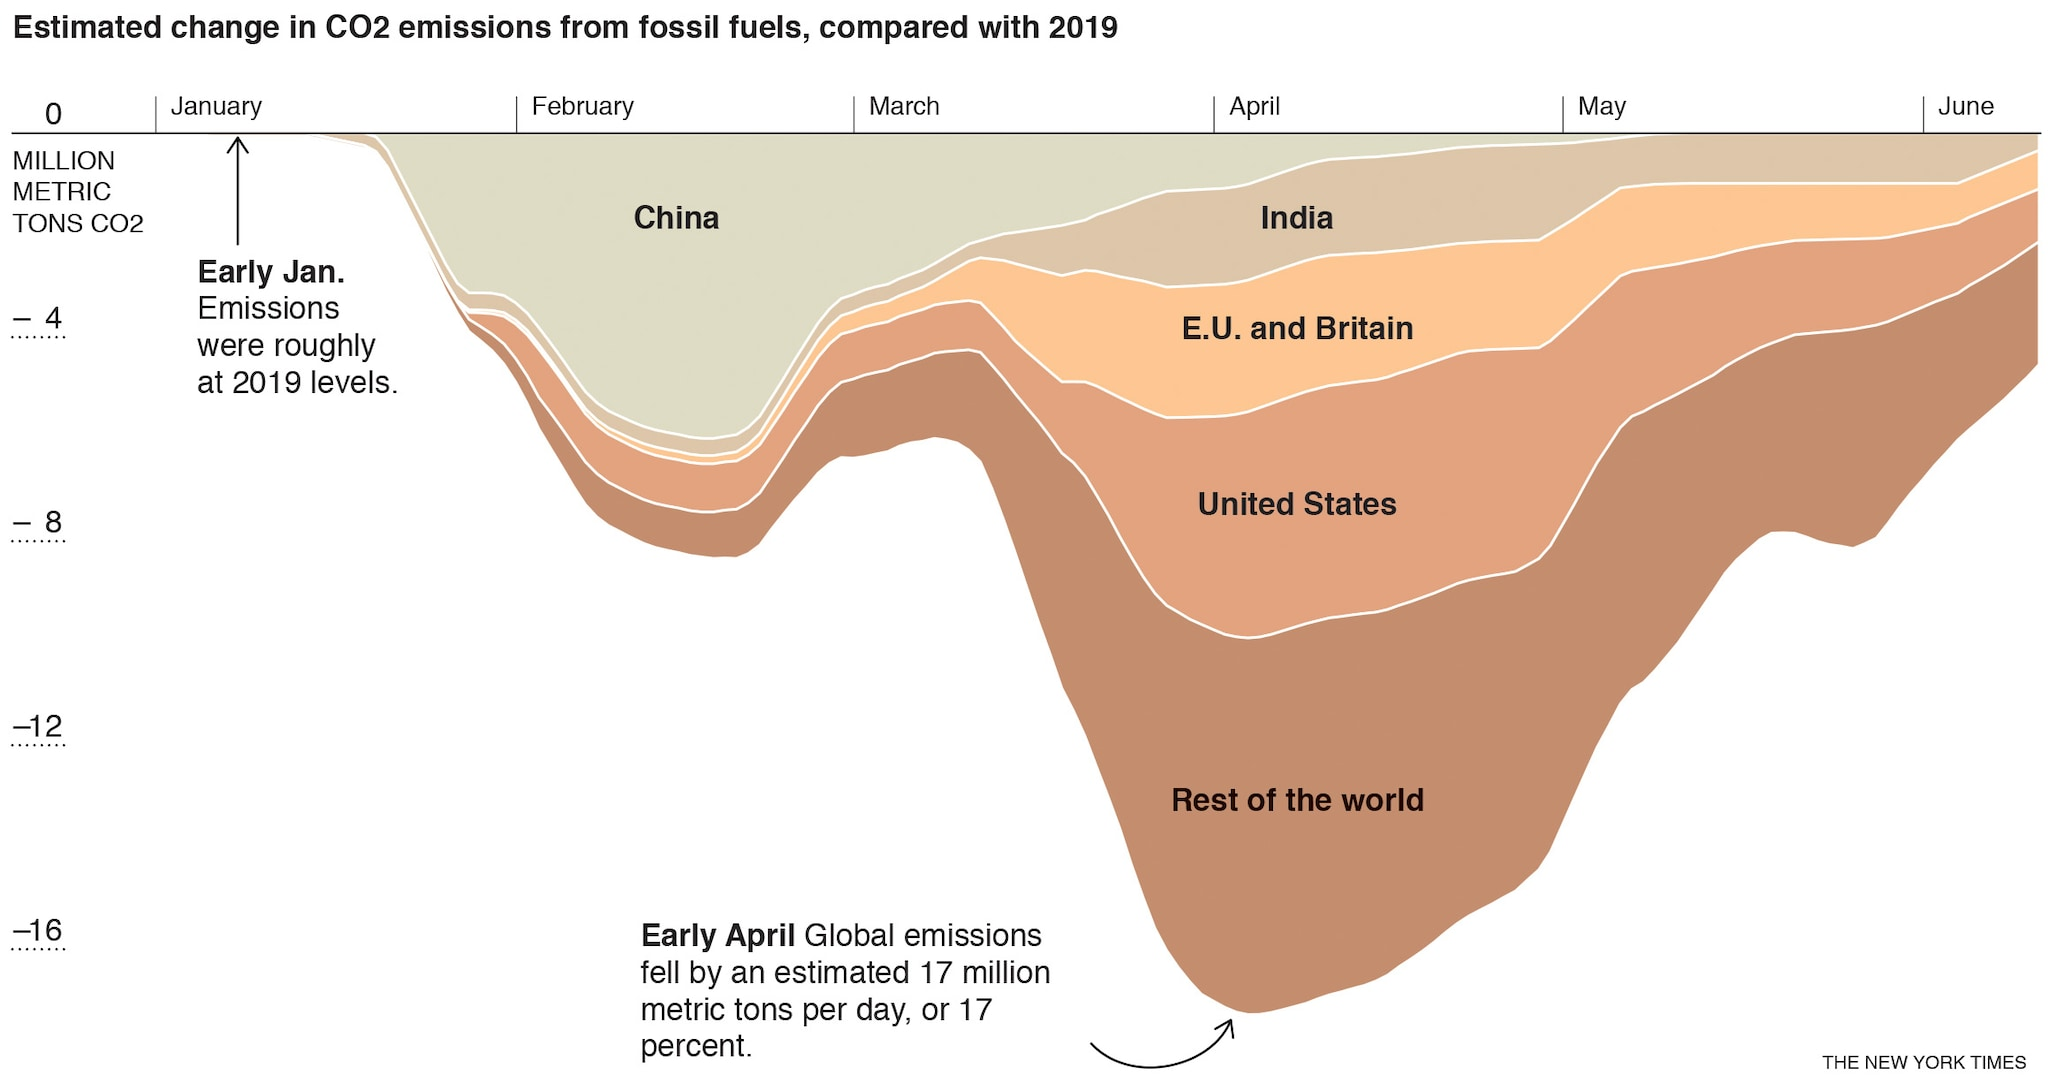 With story BC-EMISSIONS-REBOUND-NYT After a drastic decline this spring, global greenhouse gas emissions are now rebounding sharply, scientists reported, as countries relax their coronavirus lockdowns and traffic surges back onto roads. -- cat=a -- 7.8 x 4.1